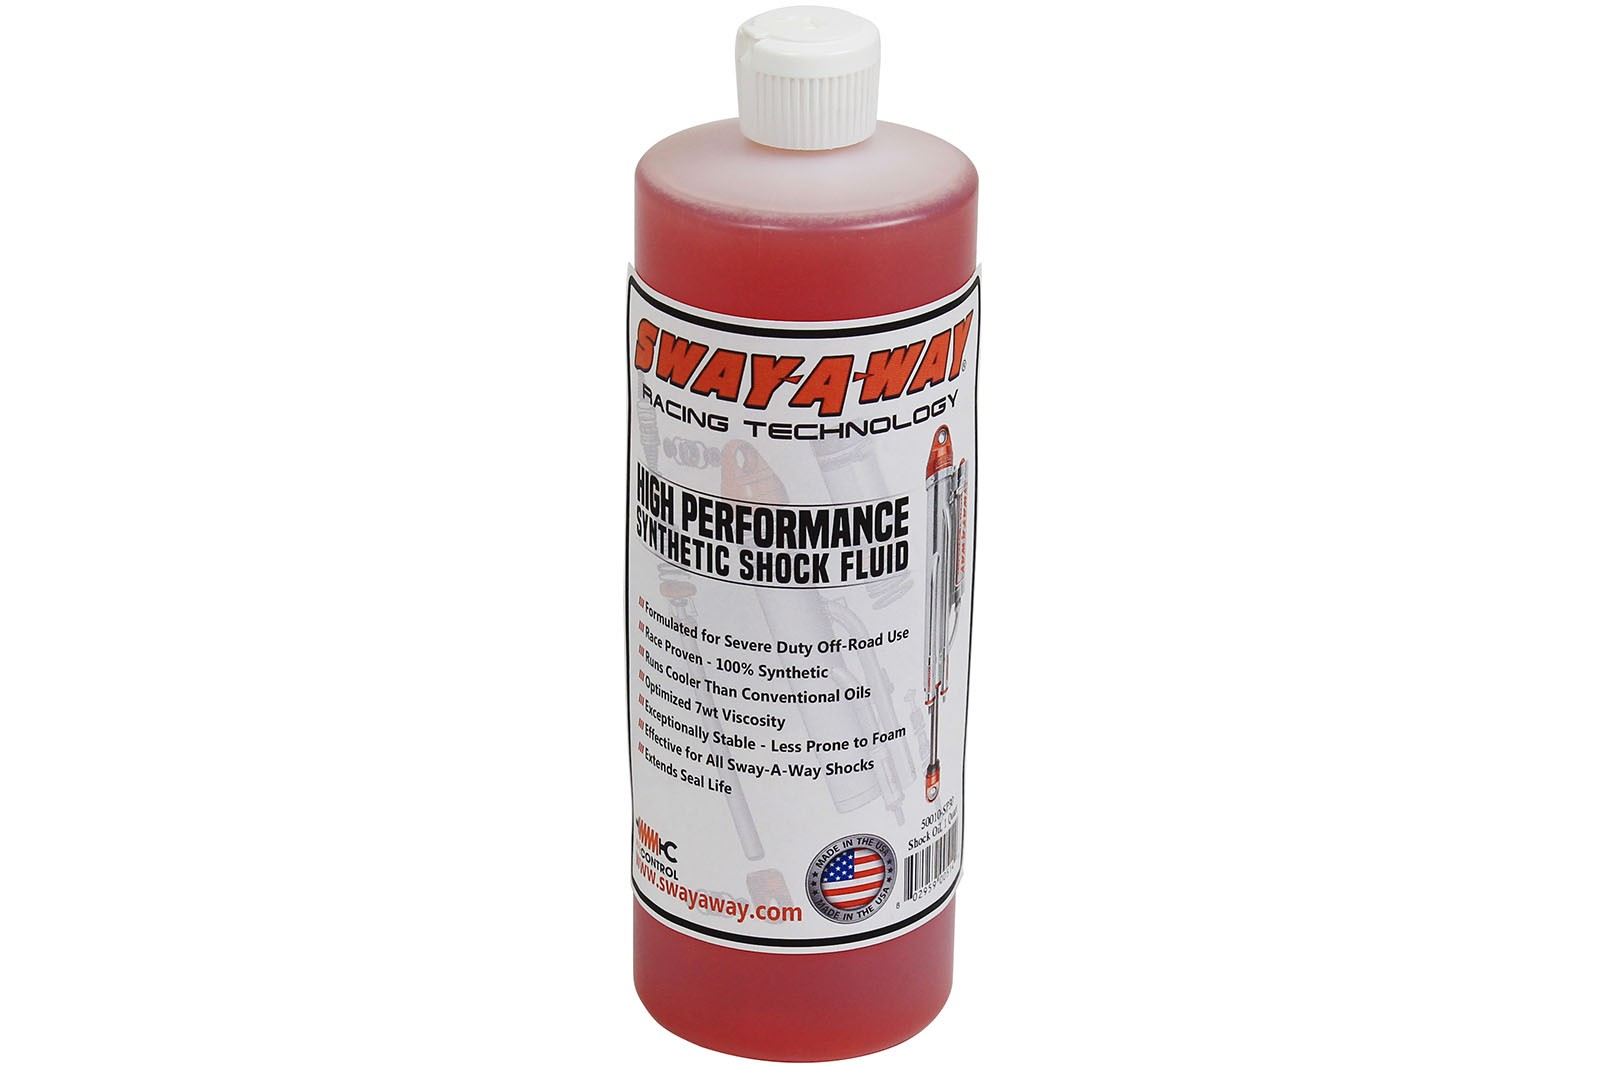 aFe POWER 50010-SP30 aFe Control Sway-A-Way Shock Oil, 1 Quart